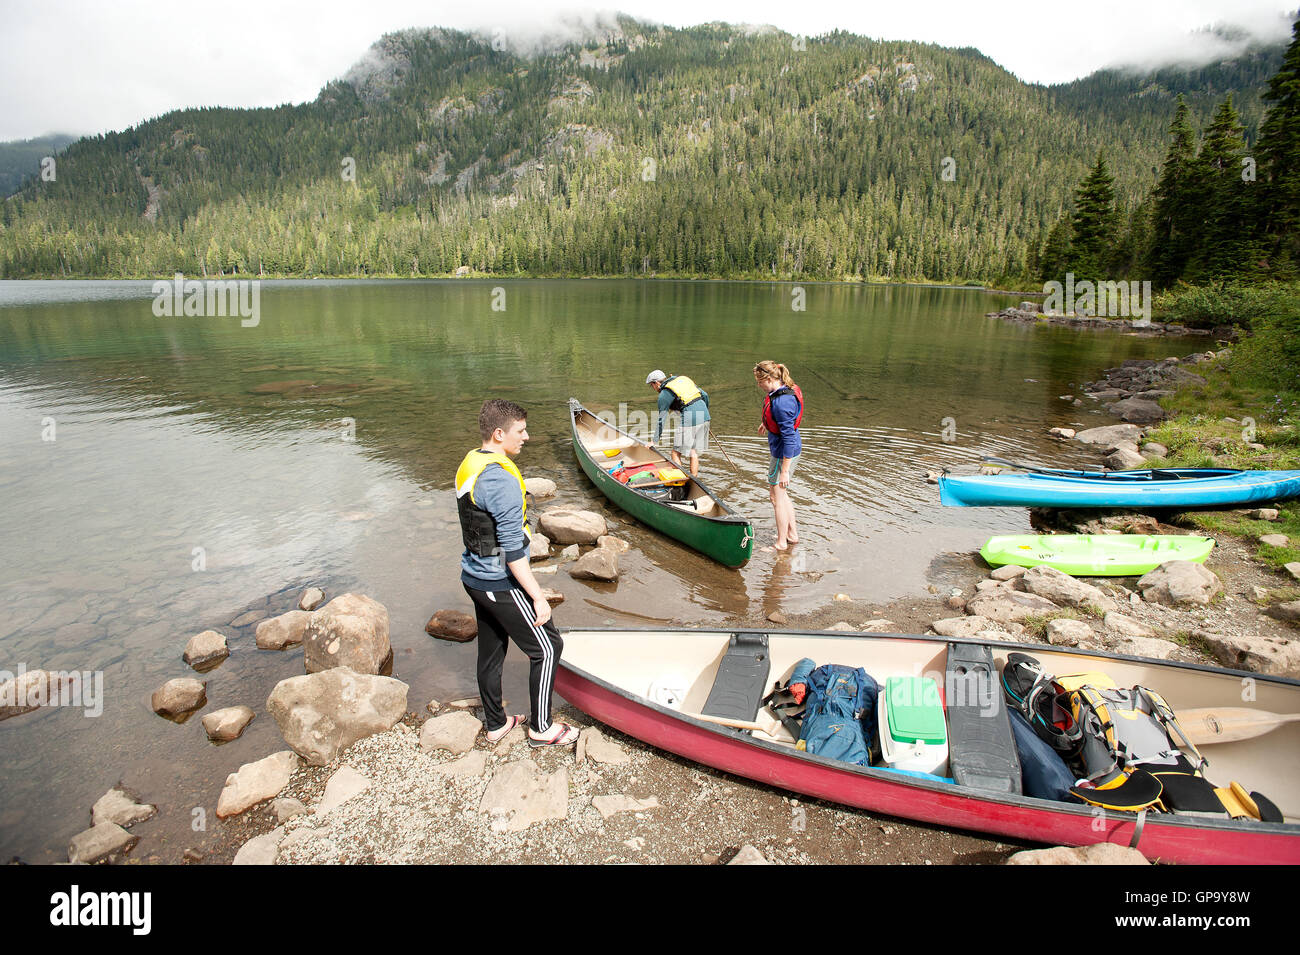 A group of canoe campers push off for a trip across Callaghan Lake Saturday afternoon.  Whistler BC, Canada  Photo: - Stock Image